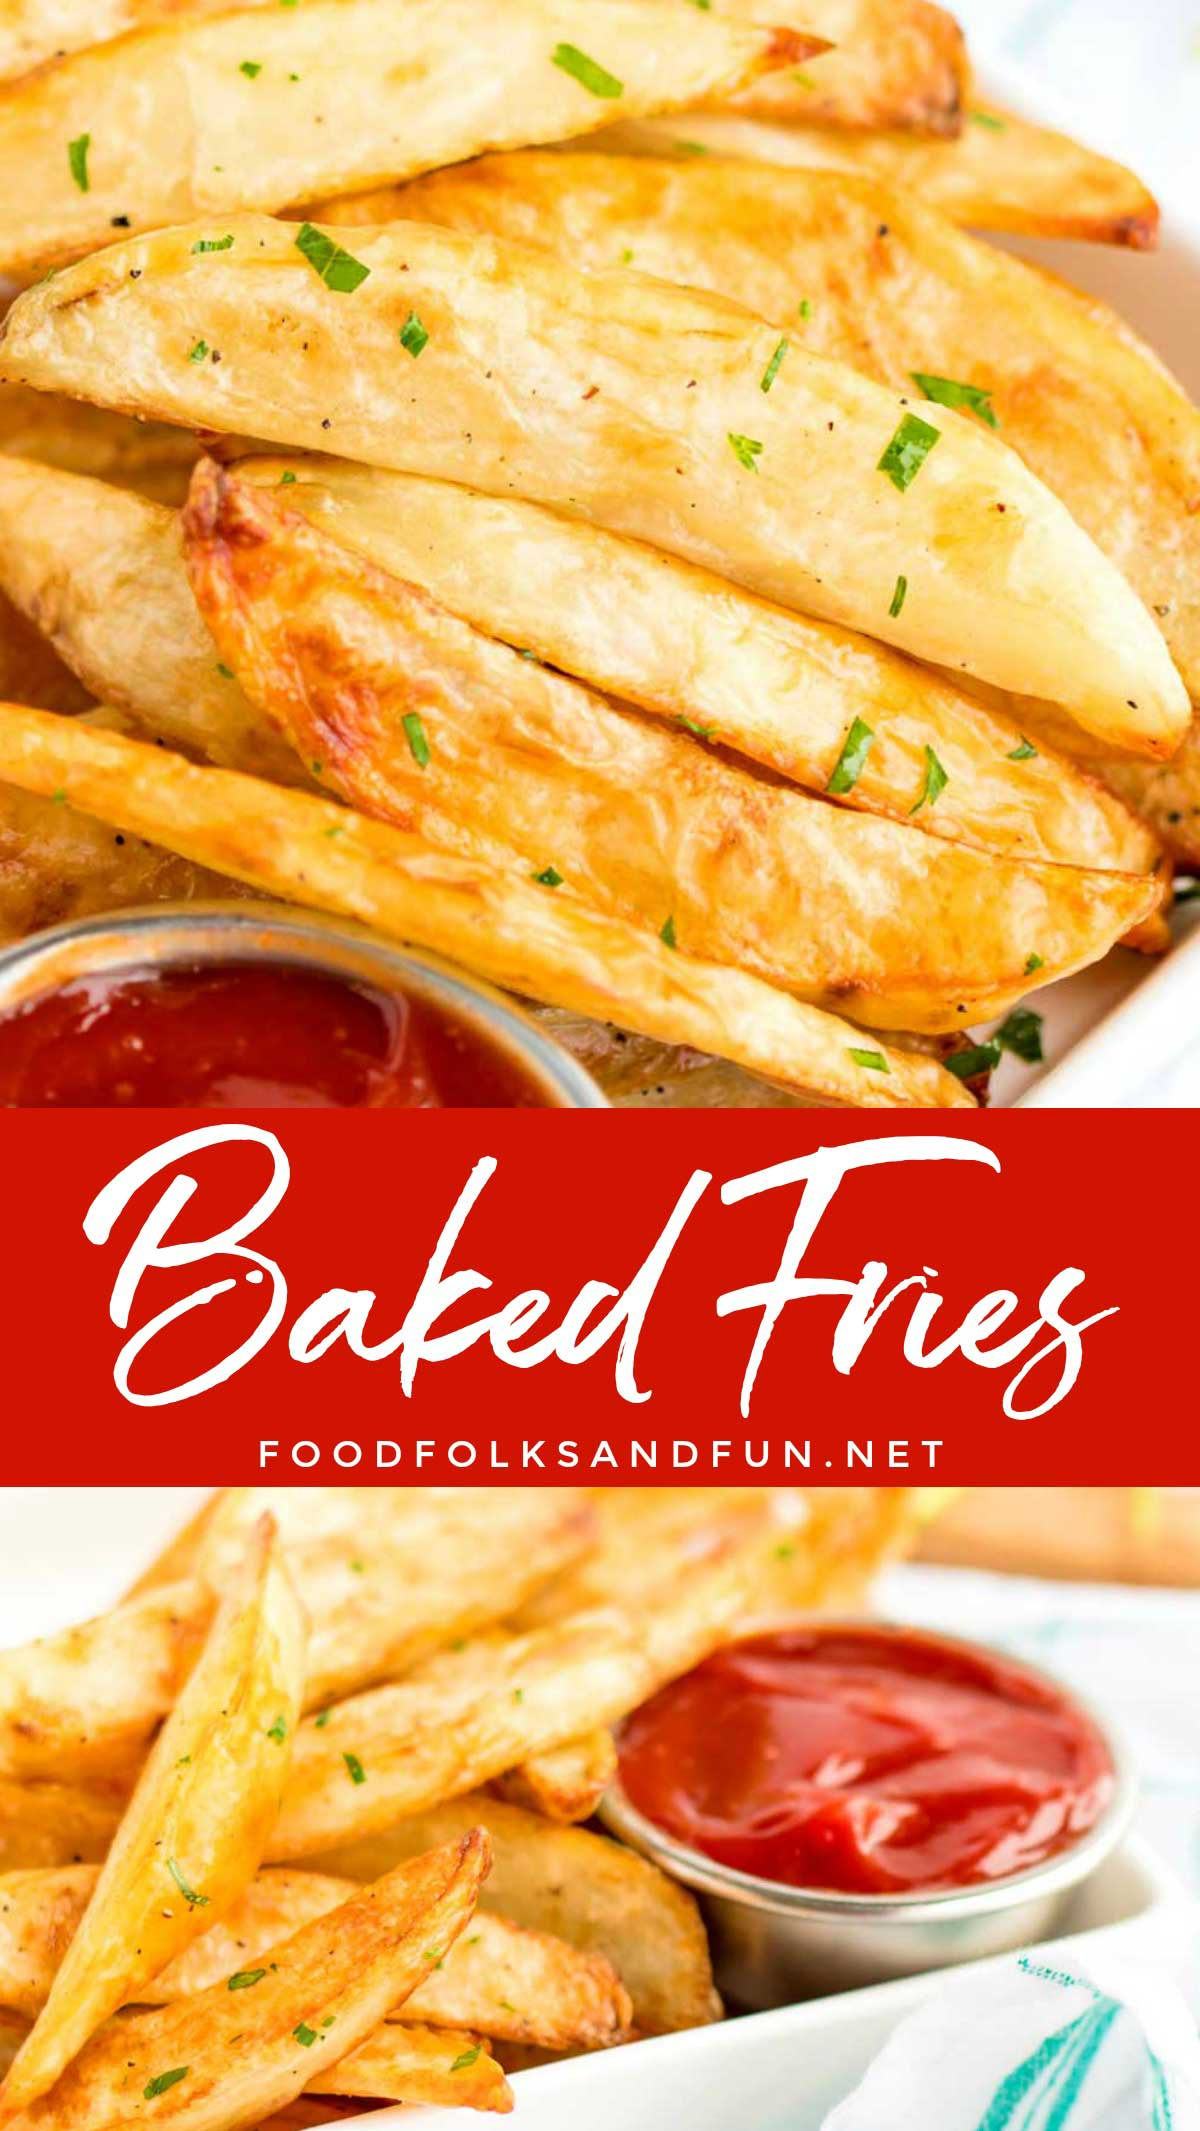 How to make Fries in the Oven with this crispy Oven Fries recipe that makes the best homemade oven baked fries every time! via @foodfolksandfun